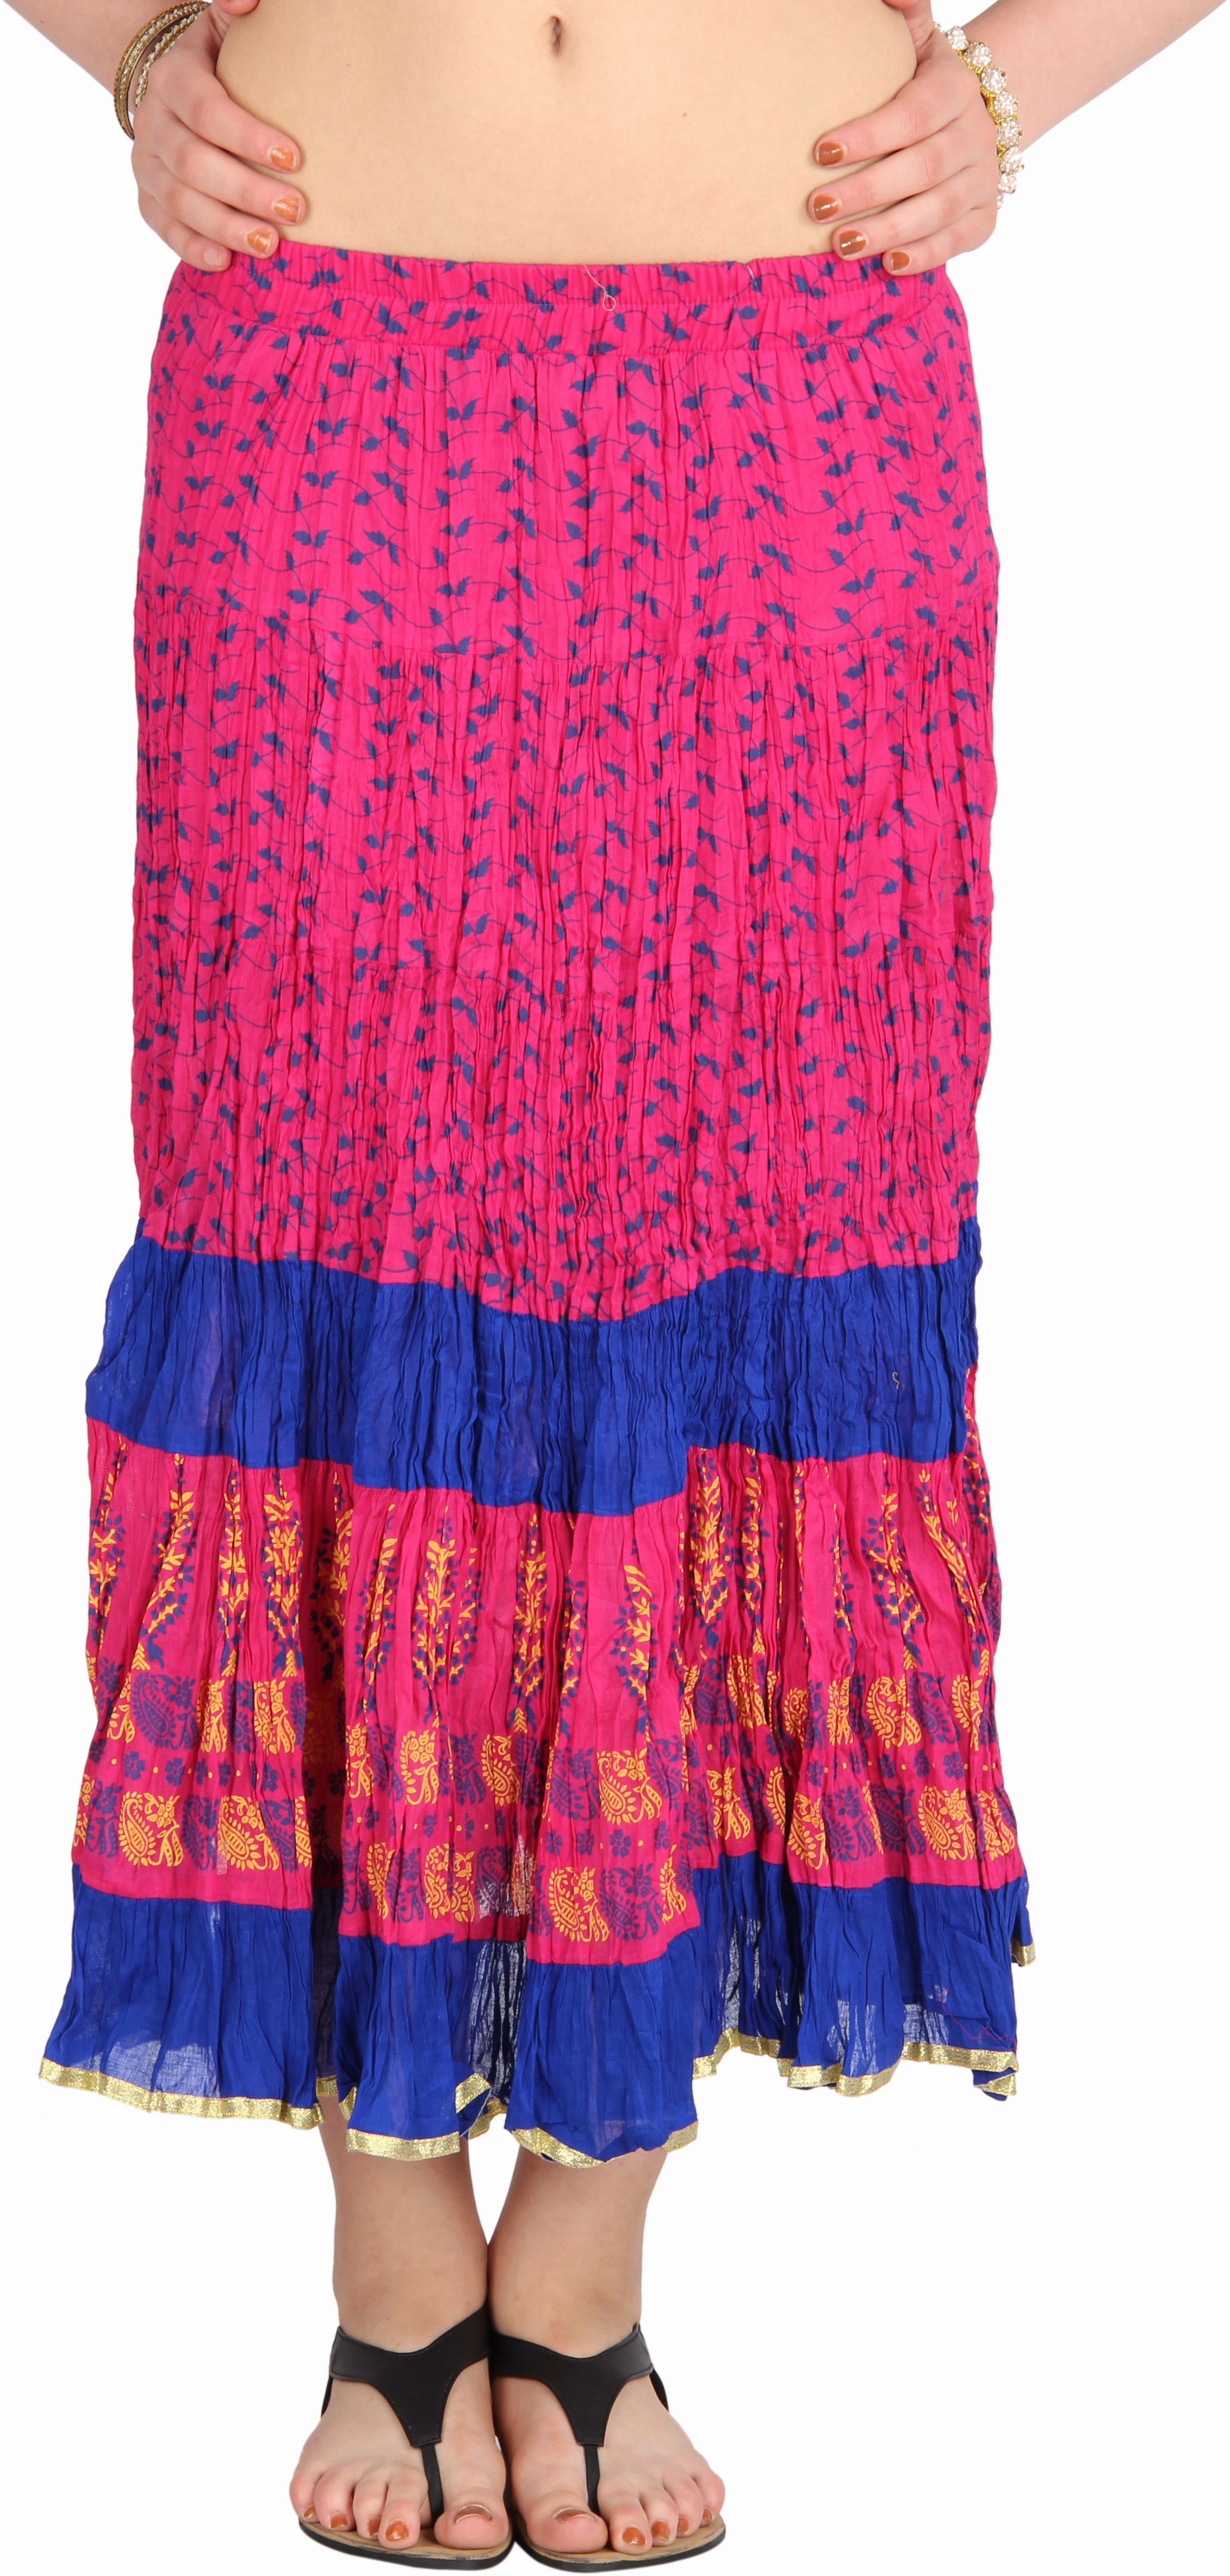 Mina Bazaar Self Design Womens A-line Multicolor Skirt